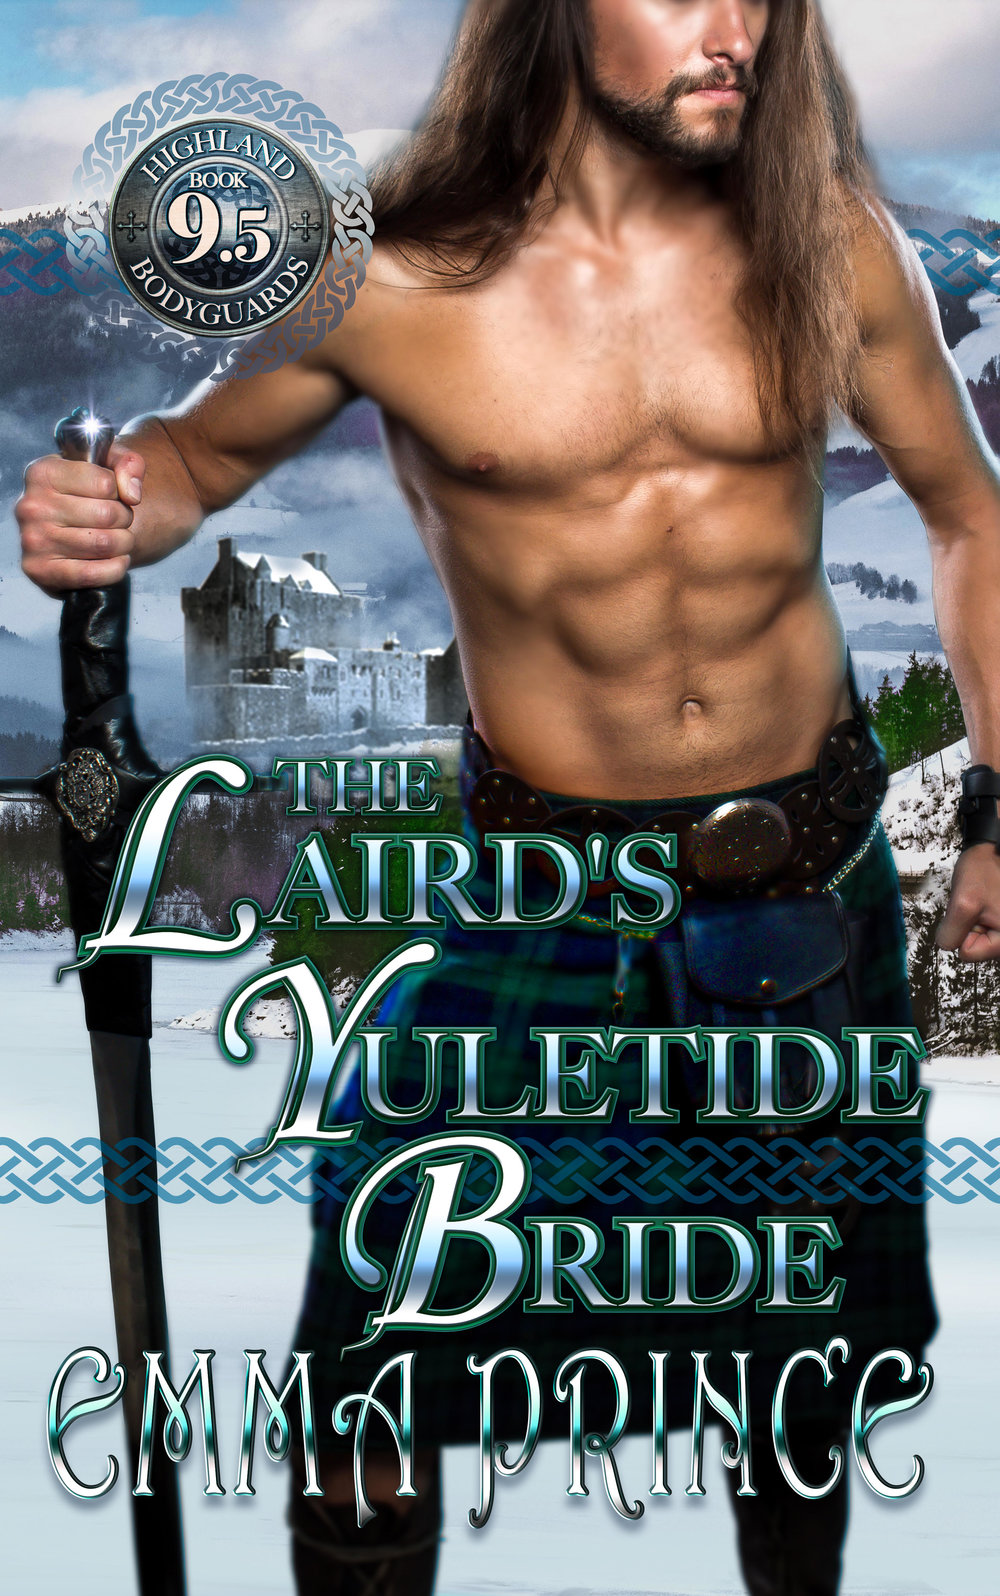 The Laird's Yuletide Bride (Book 9.5)